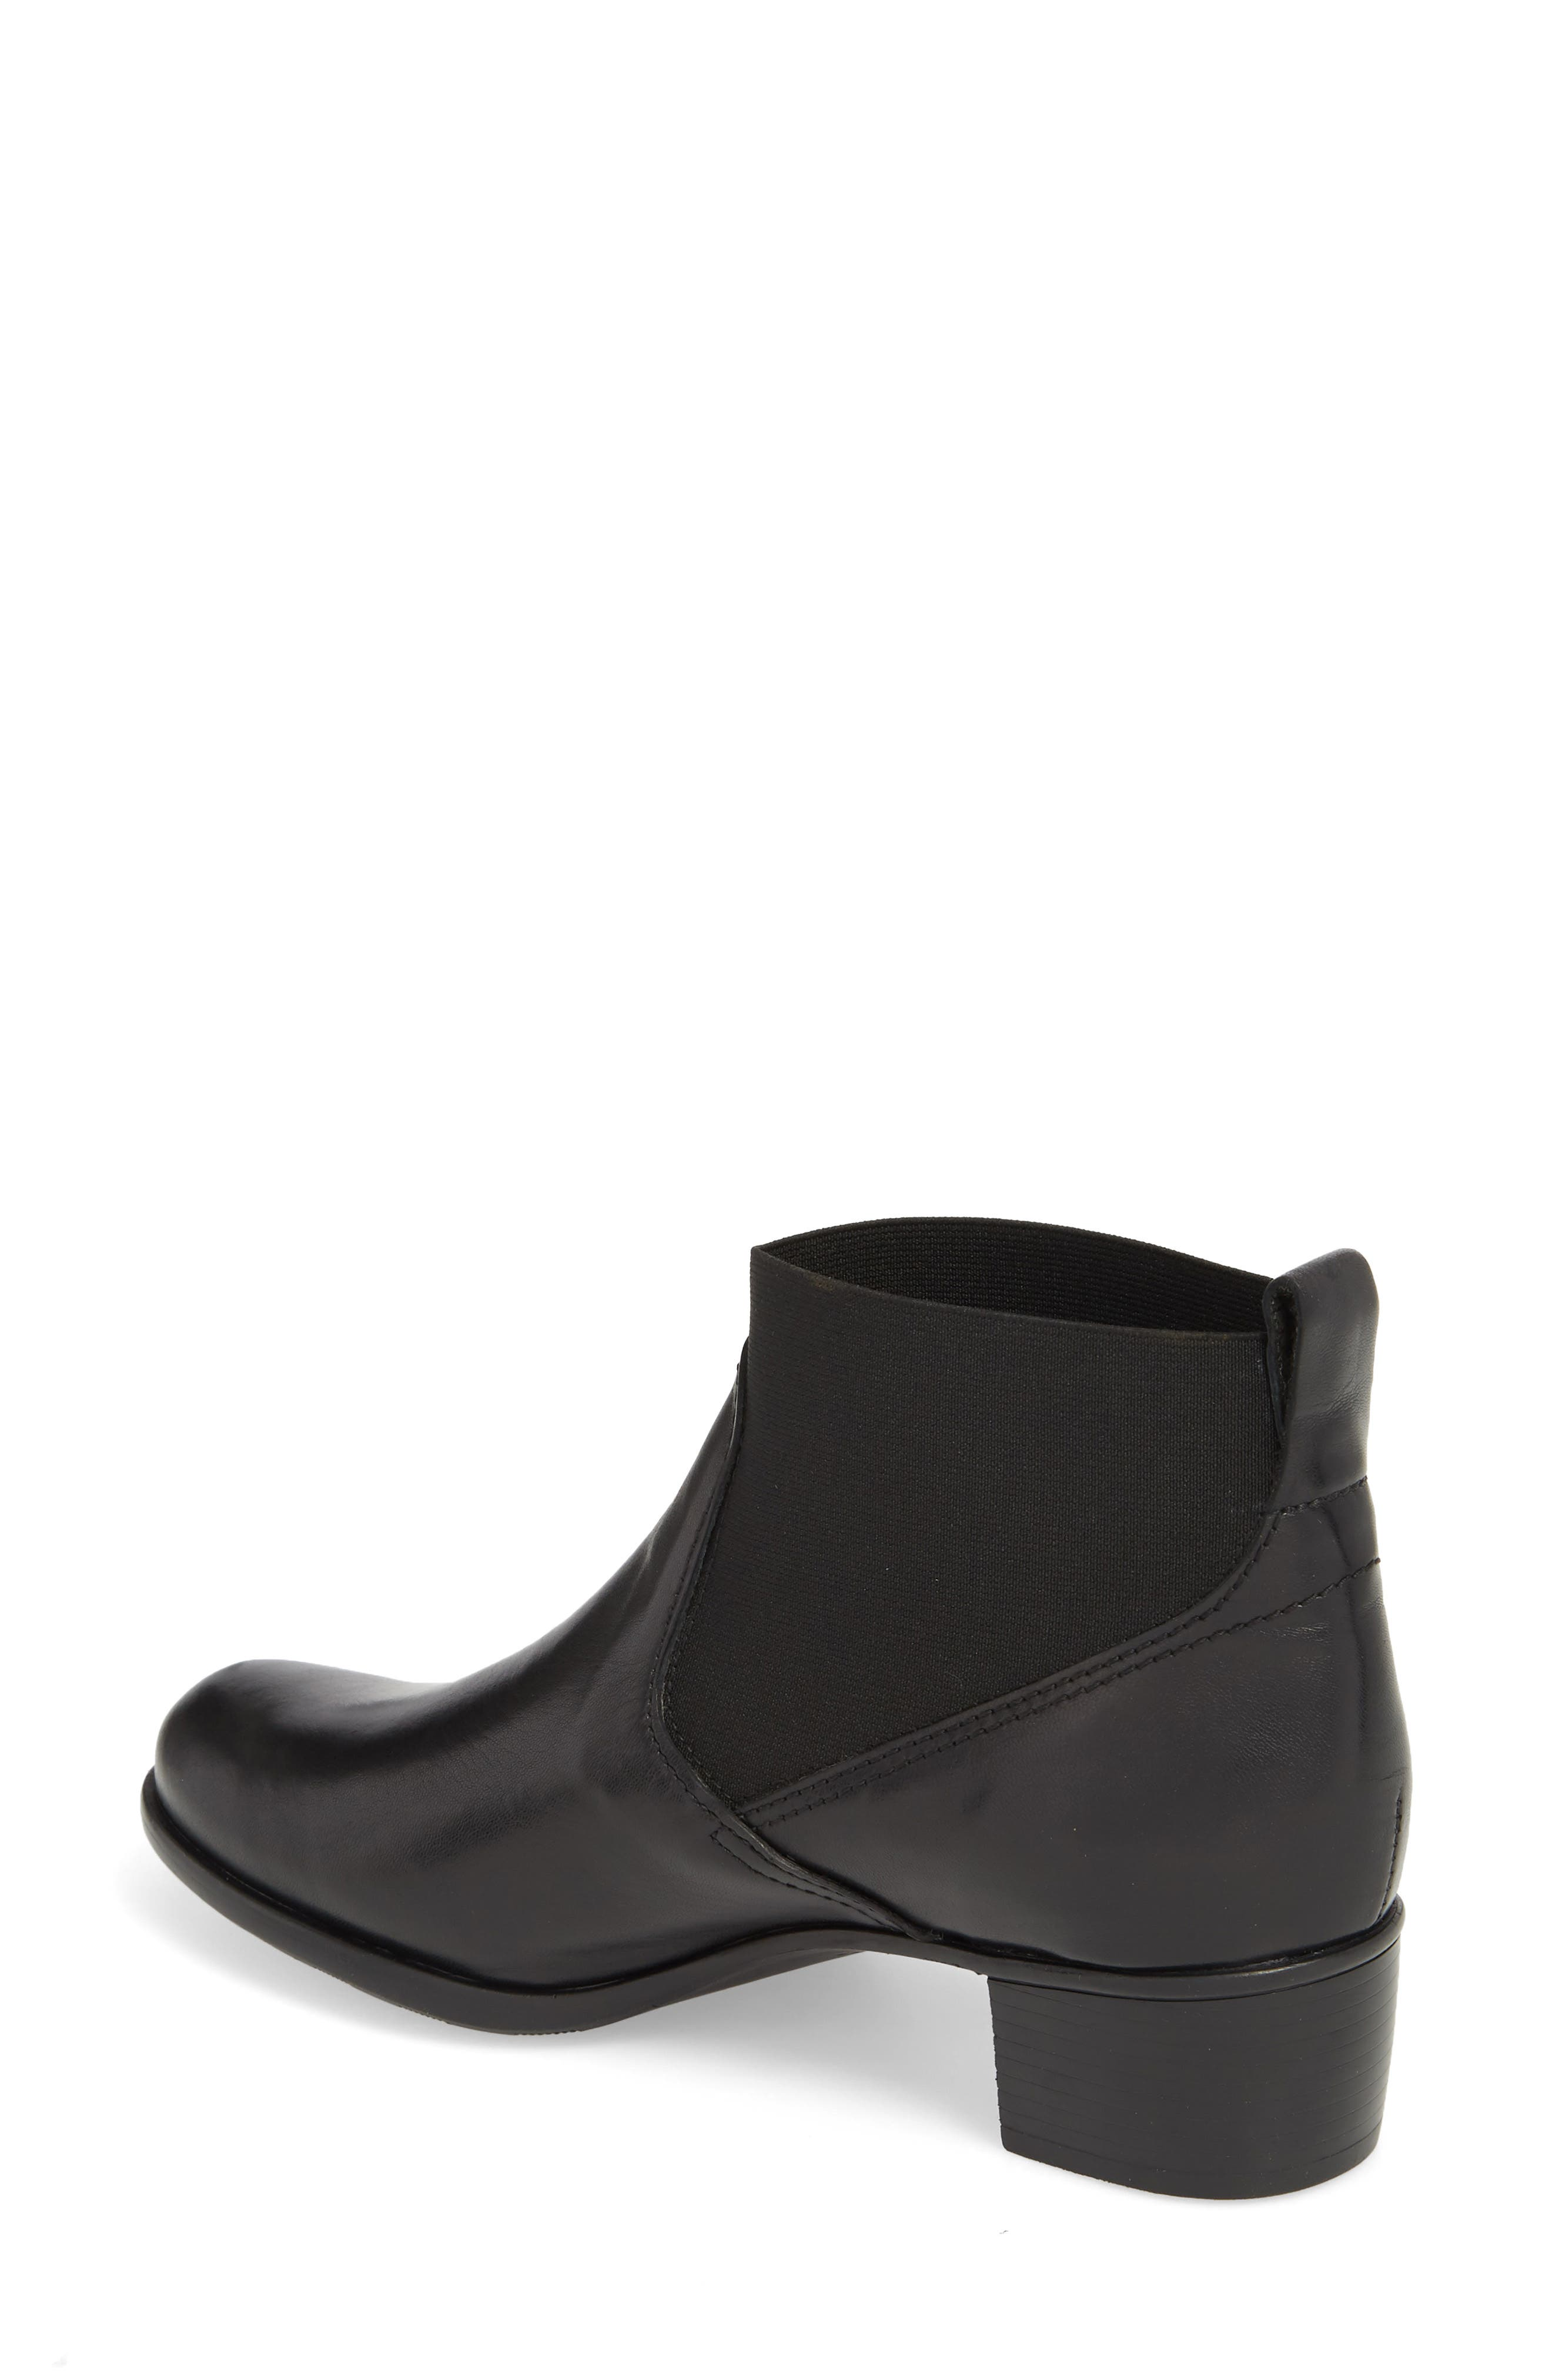 Ana Bootie,                             Alternate thumbnail 2, color,                             BLACK LEATHER